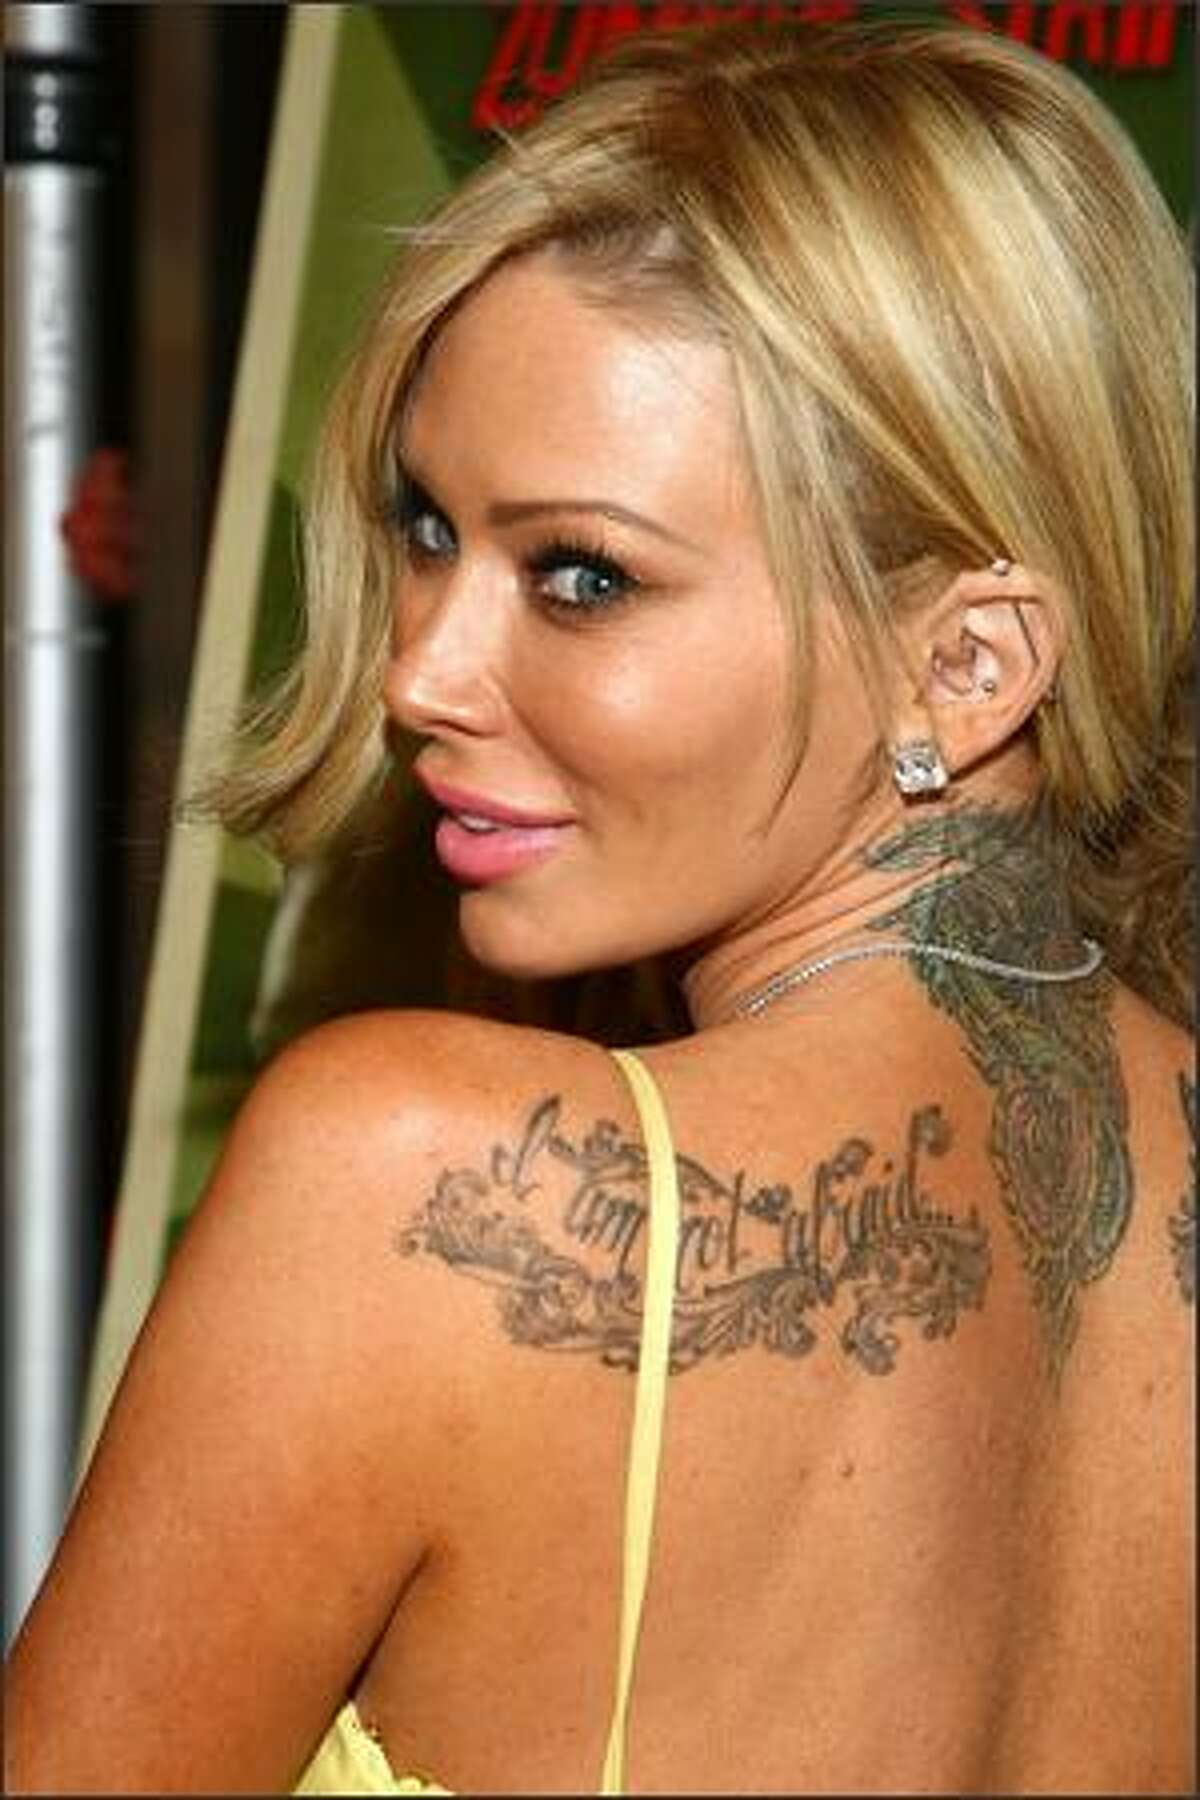 Actress Jenna Jameson arrives at the Triumph Films' premiere of